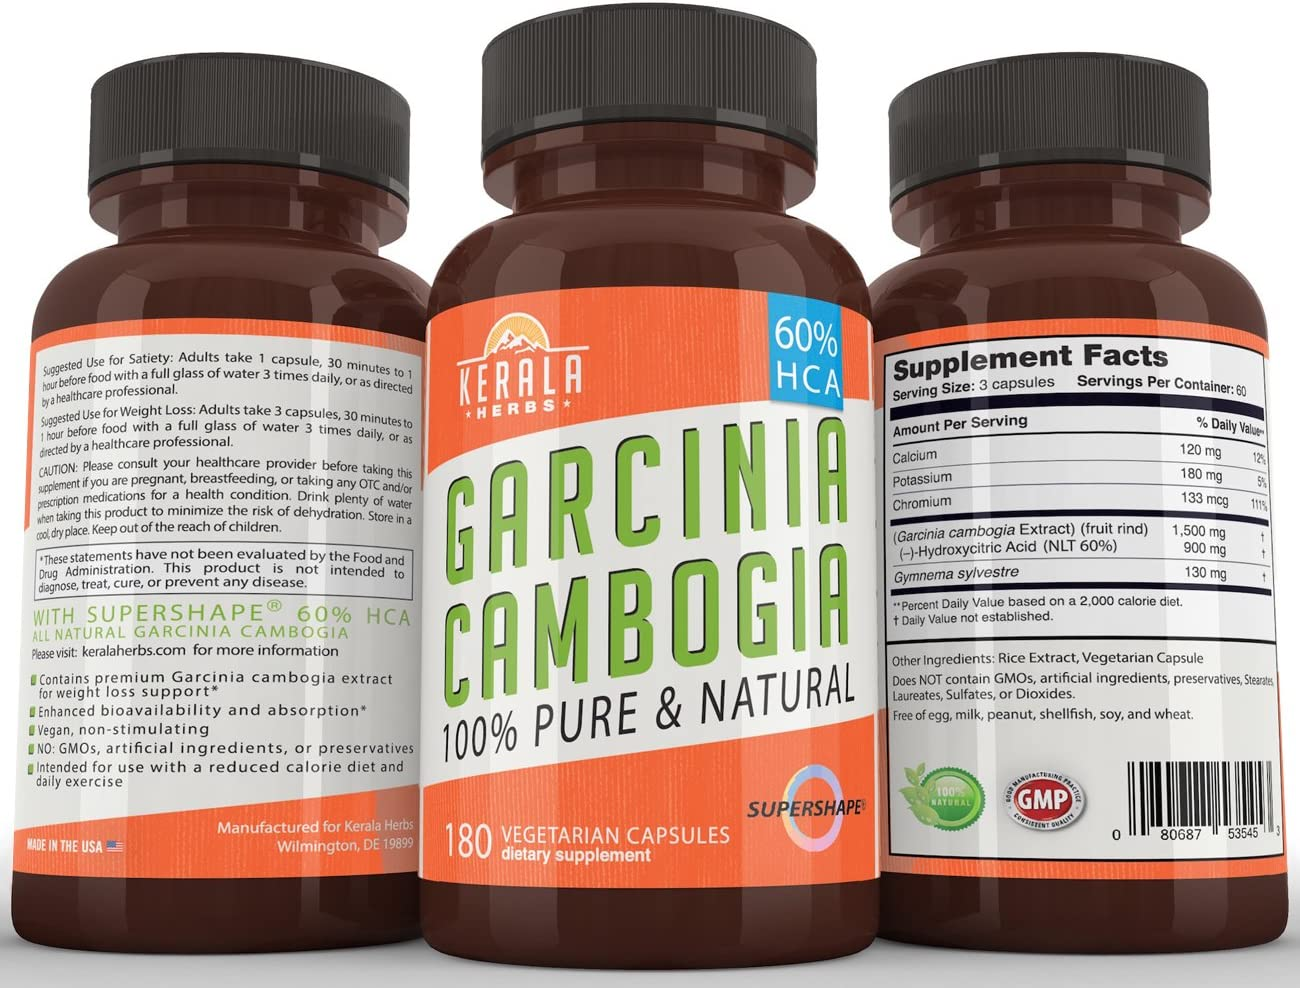 Garcinia Cambogia 100 Pure Extra Strength Extract with 60 HCA, 180 Capsules, All Natural Appetite Suppressant, Fat Burner, Carb Blocker, Weight Loss Diet Supplement That Works for Women and Men